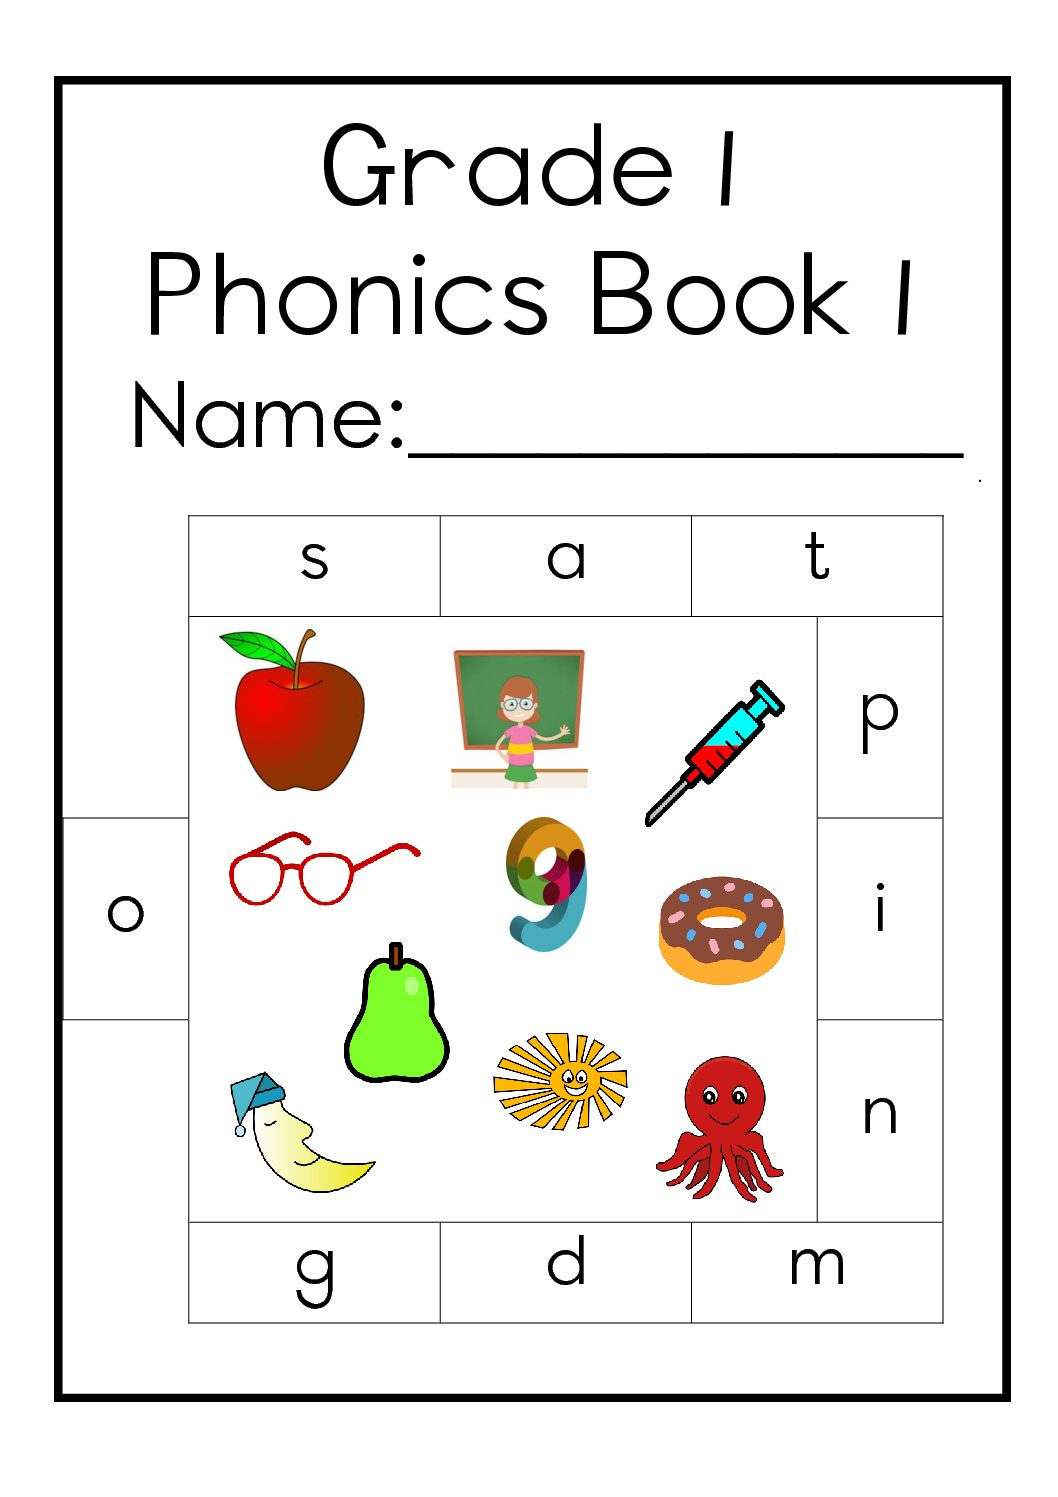 Grade 1 English Home Language Phonics Book 1 Teacha